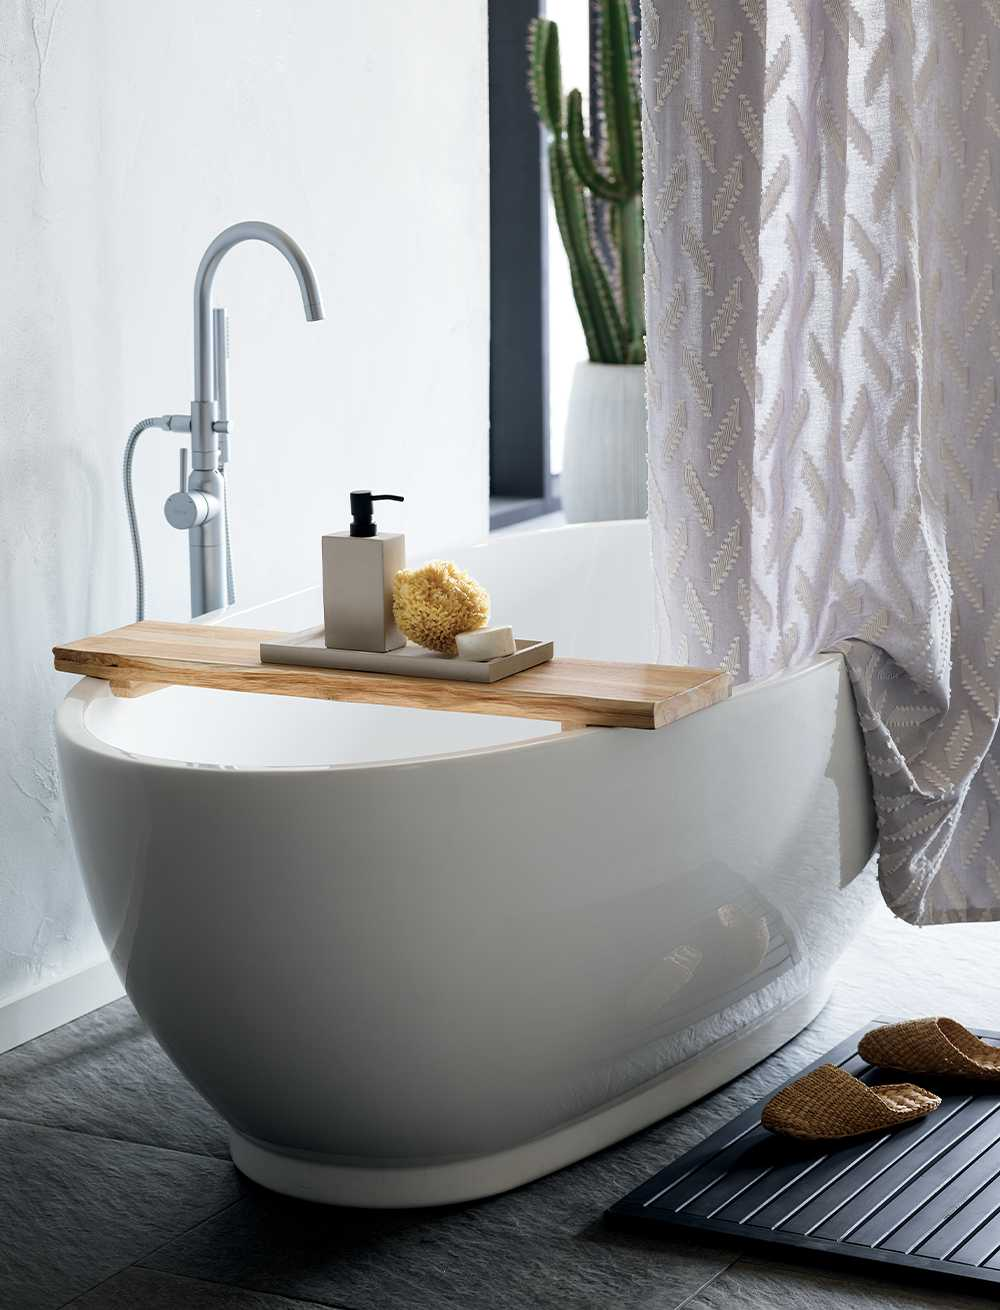 New bath accessories for your bath